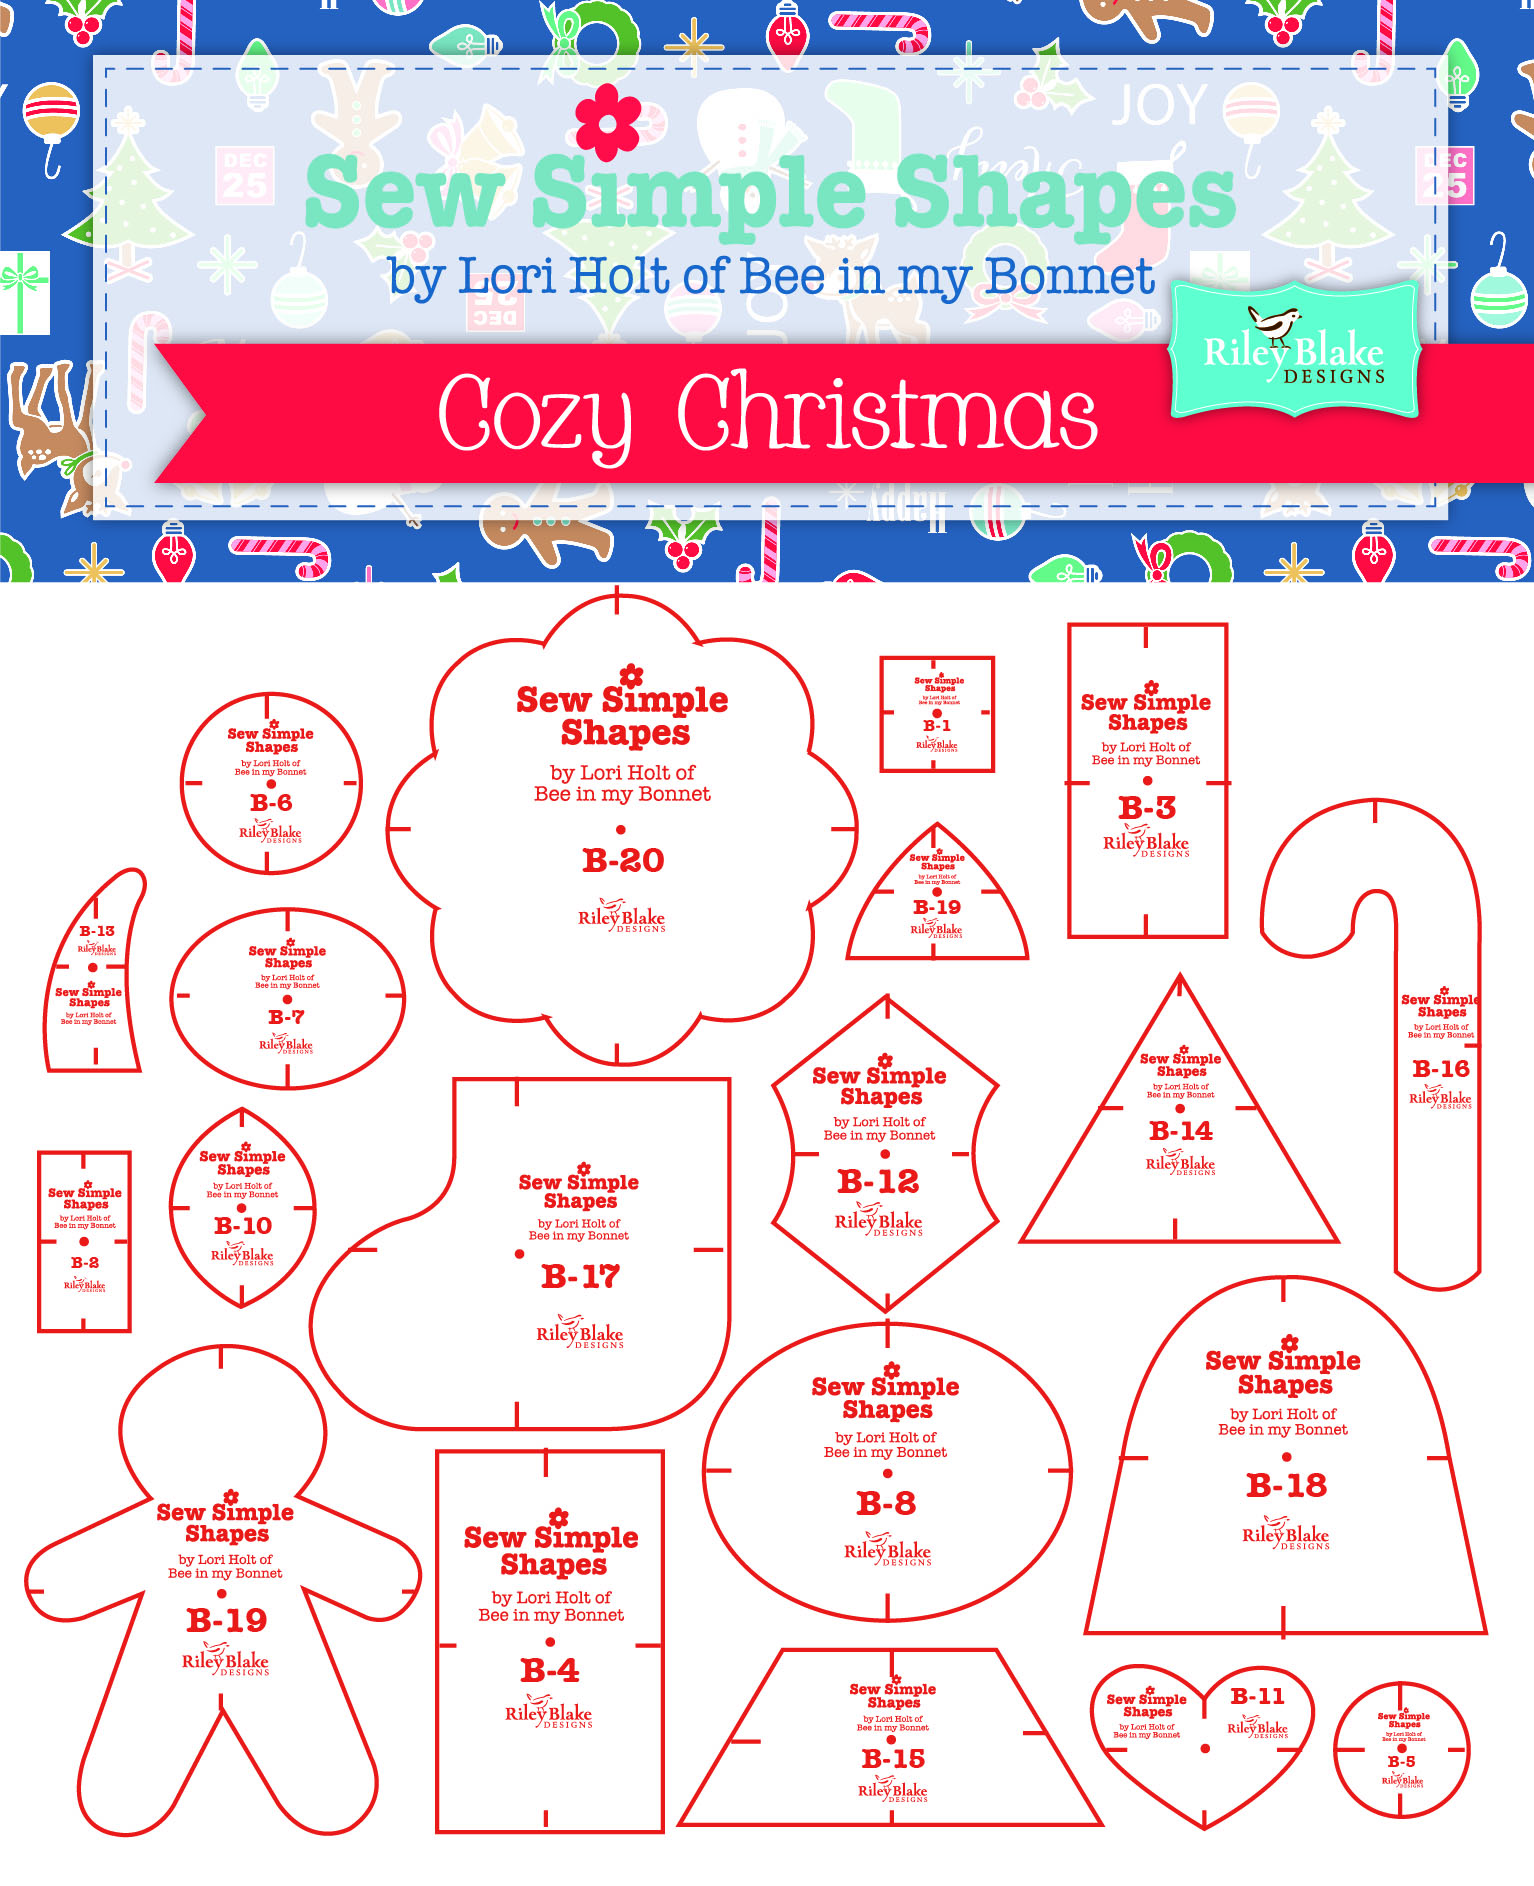 Sew Simple Shapes Cozy Christmas Lori Holt